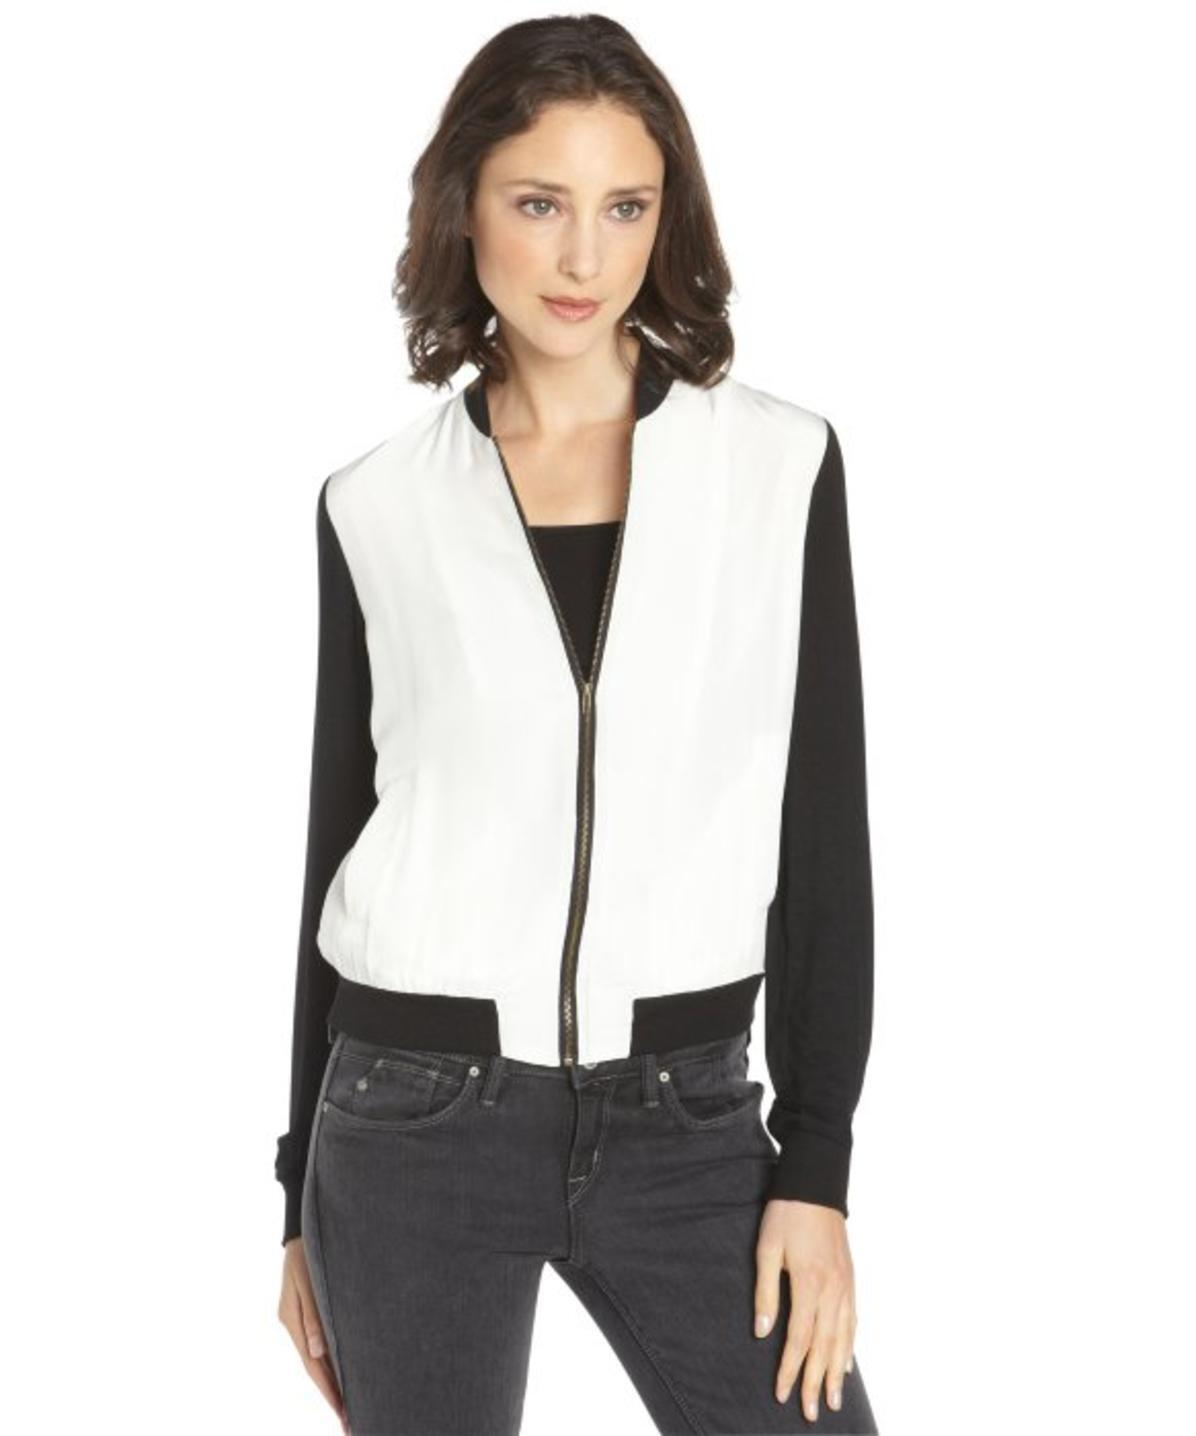 SANCTUARY  faux leather sleeves Weiß zip up jacket sz M new